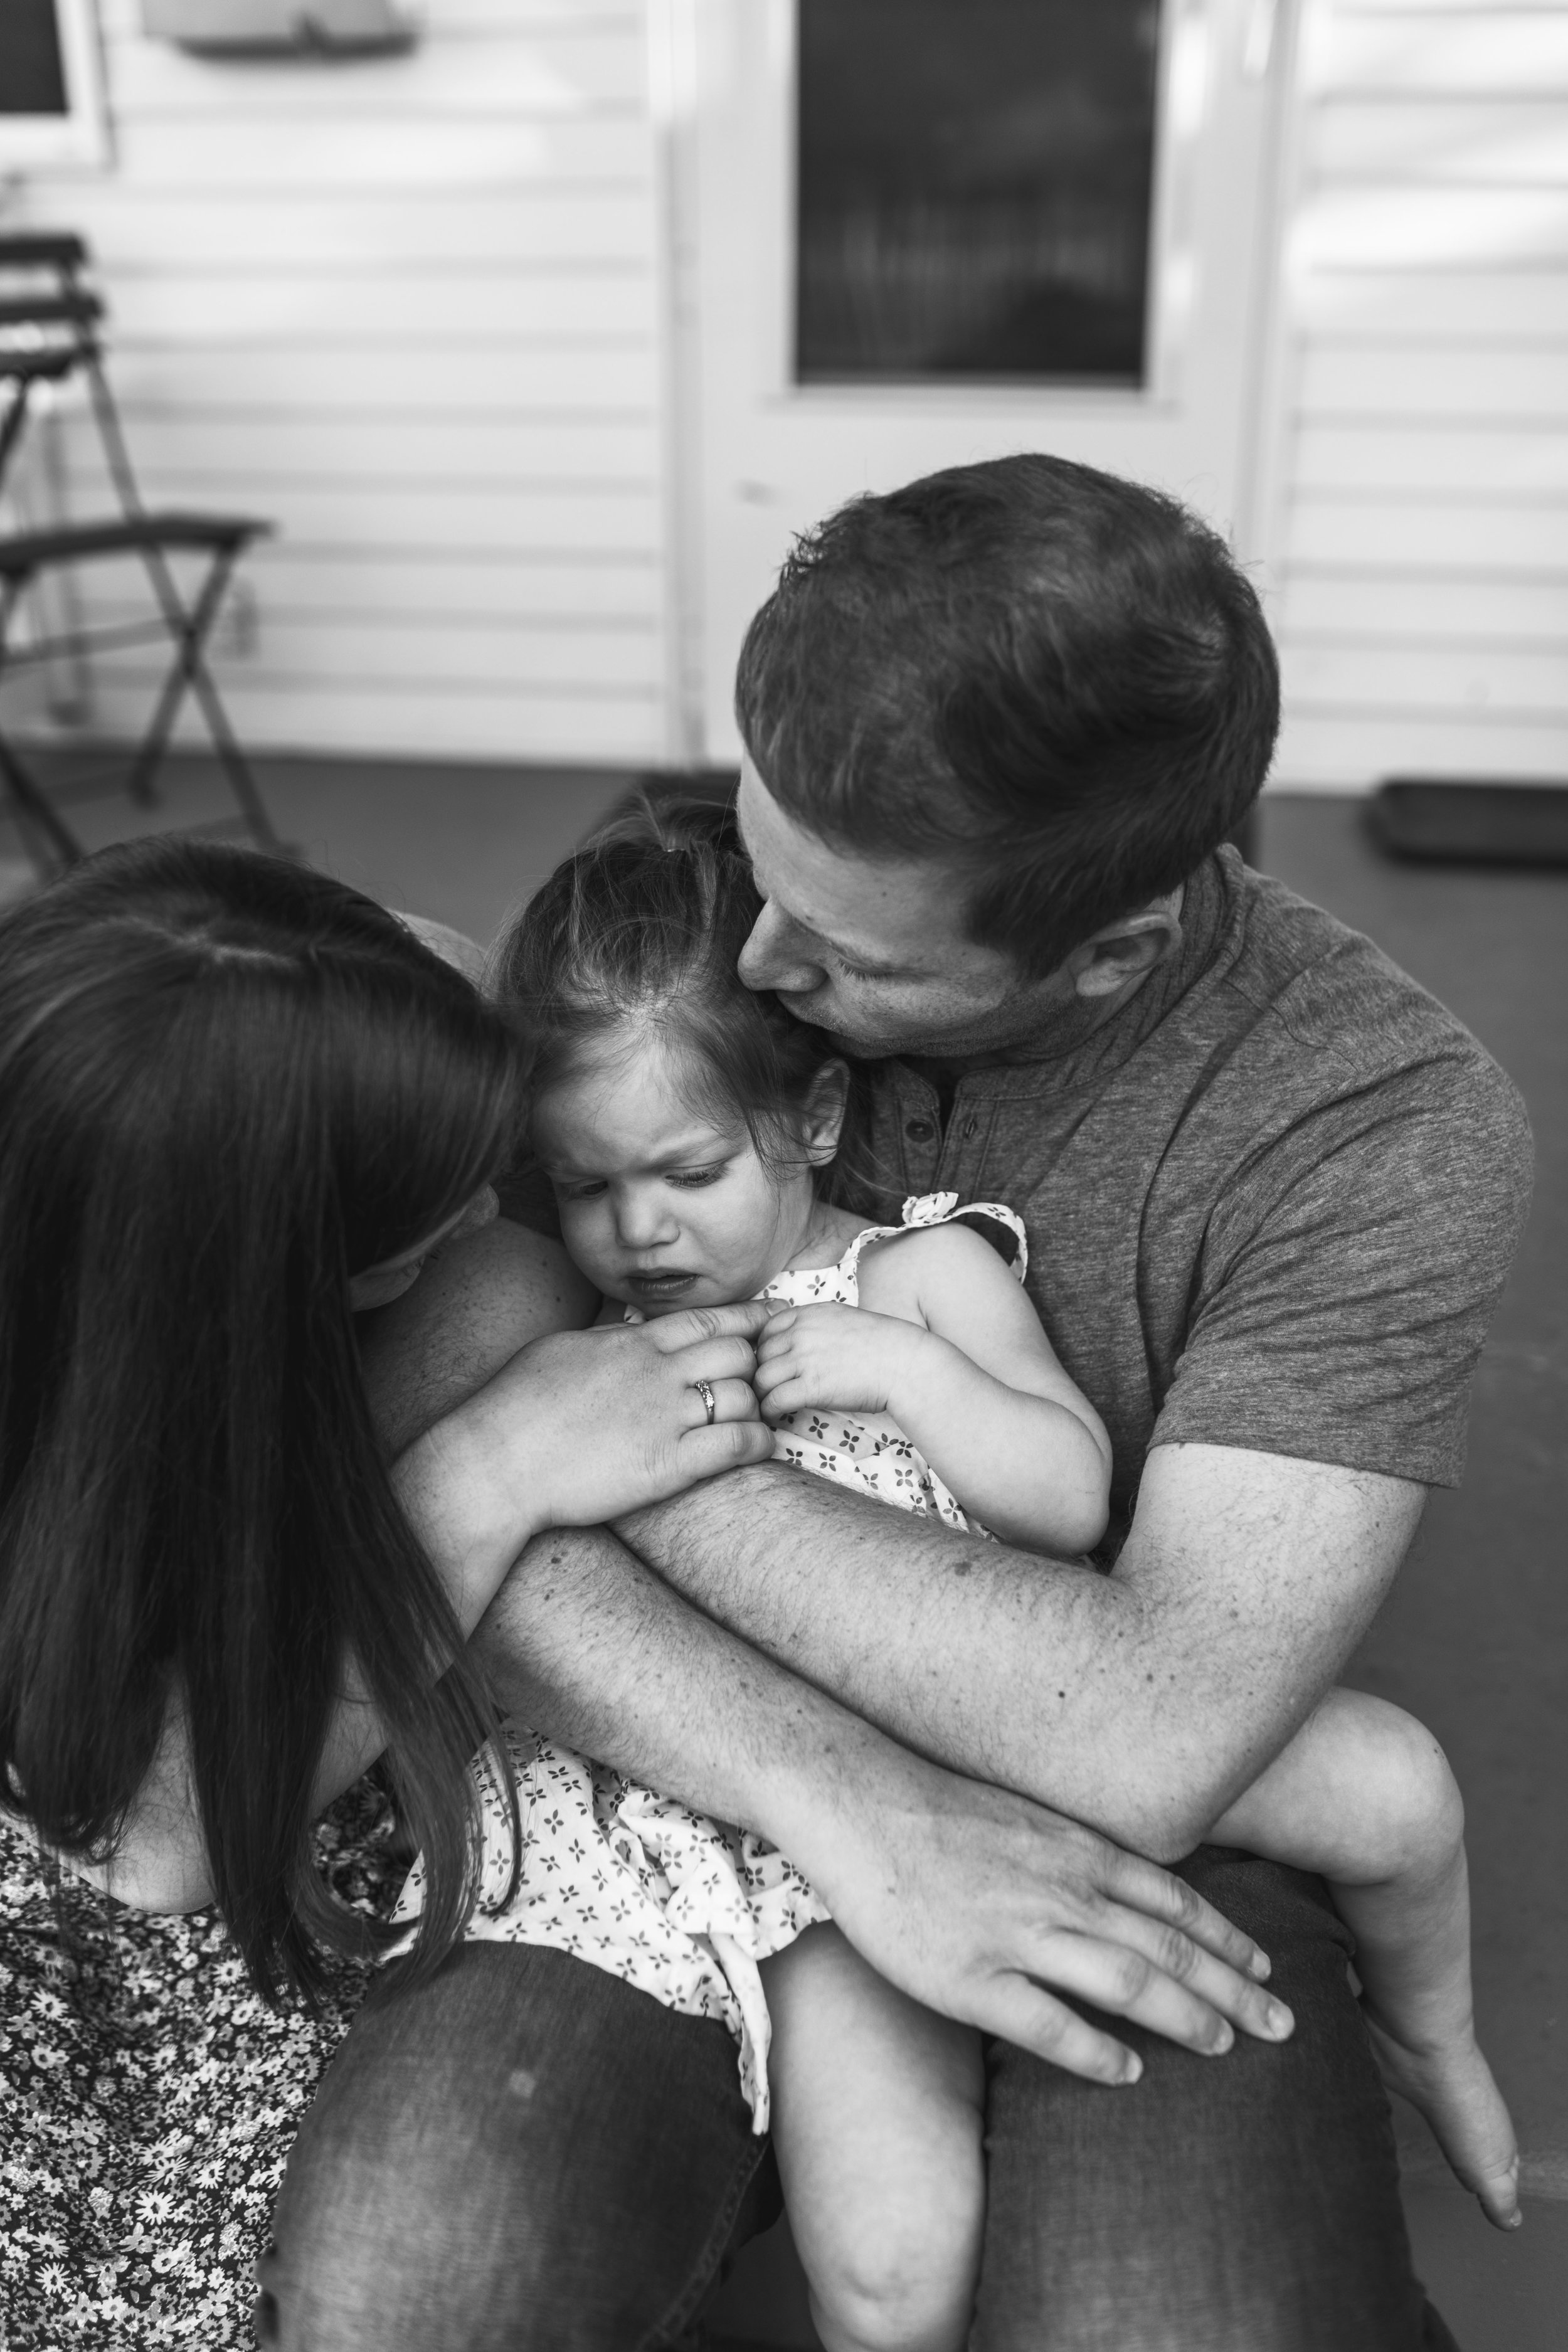 Fall city in-home maternity session, natural light, candid, family photography by Seattle Photographer Chelsea Macor Photography #seattlematernityphotographer, #seattlefamilyphotographer #seattlelifestylephotographer